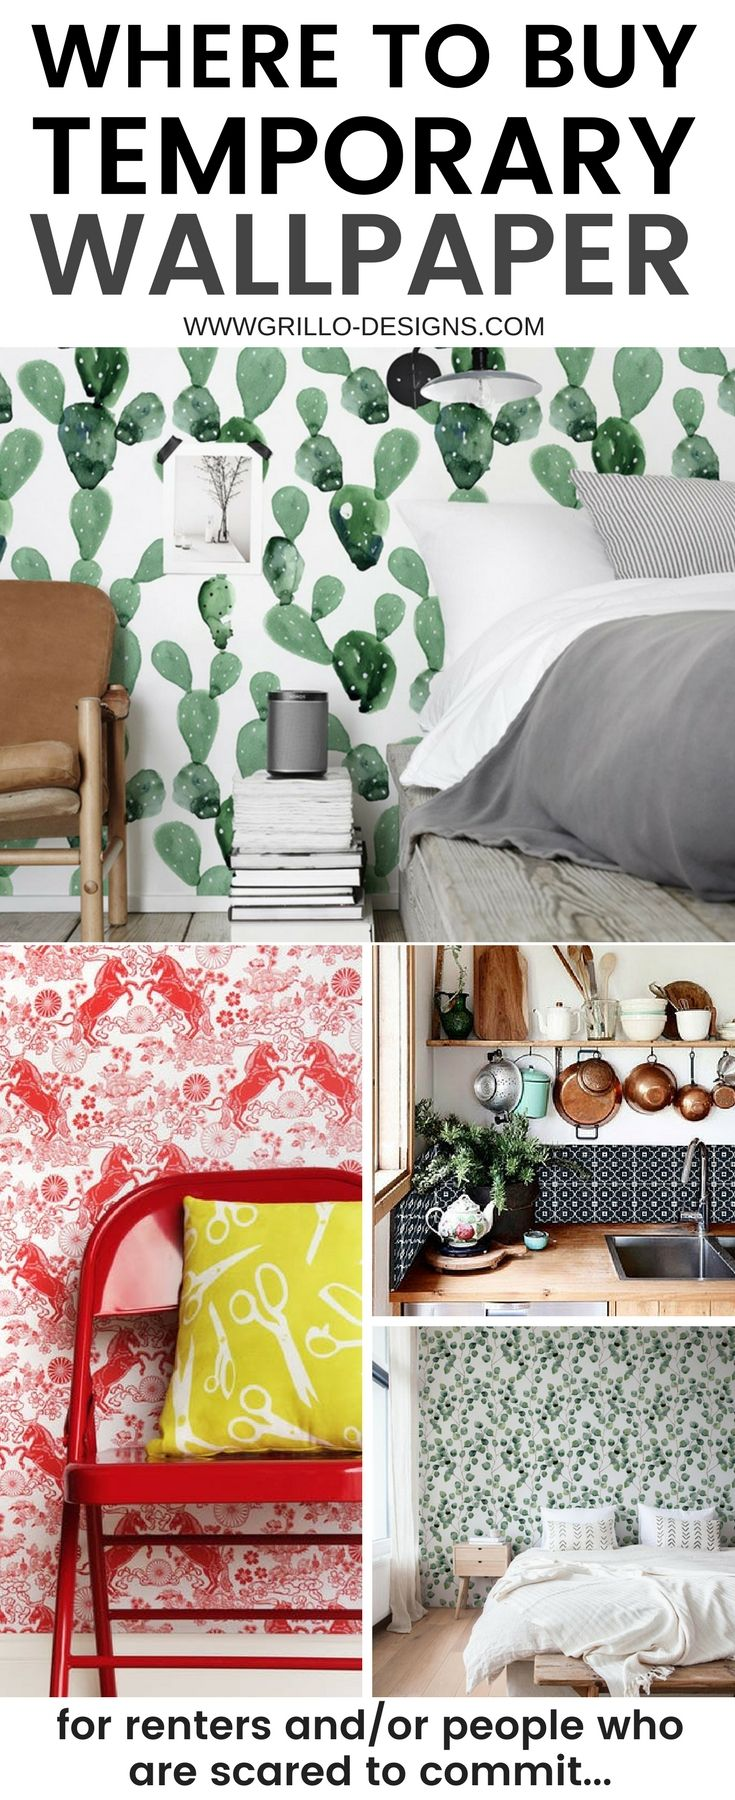 The Best Places To Buy Temporary Wallpaper Online Temporary Wallpaper Removable Wallpaper For Renters Apartment Decorating Rental